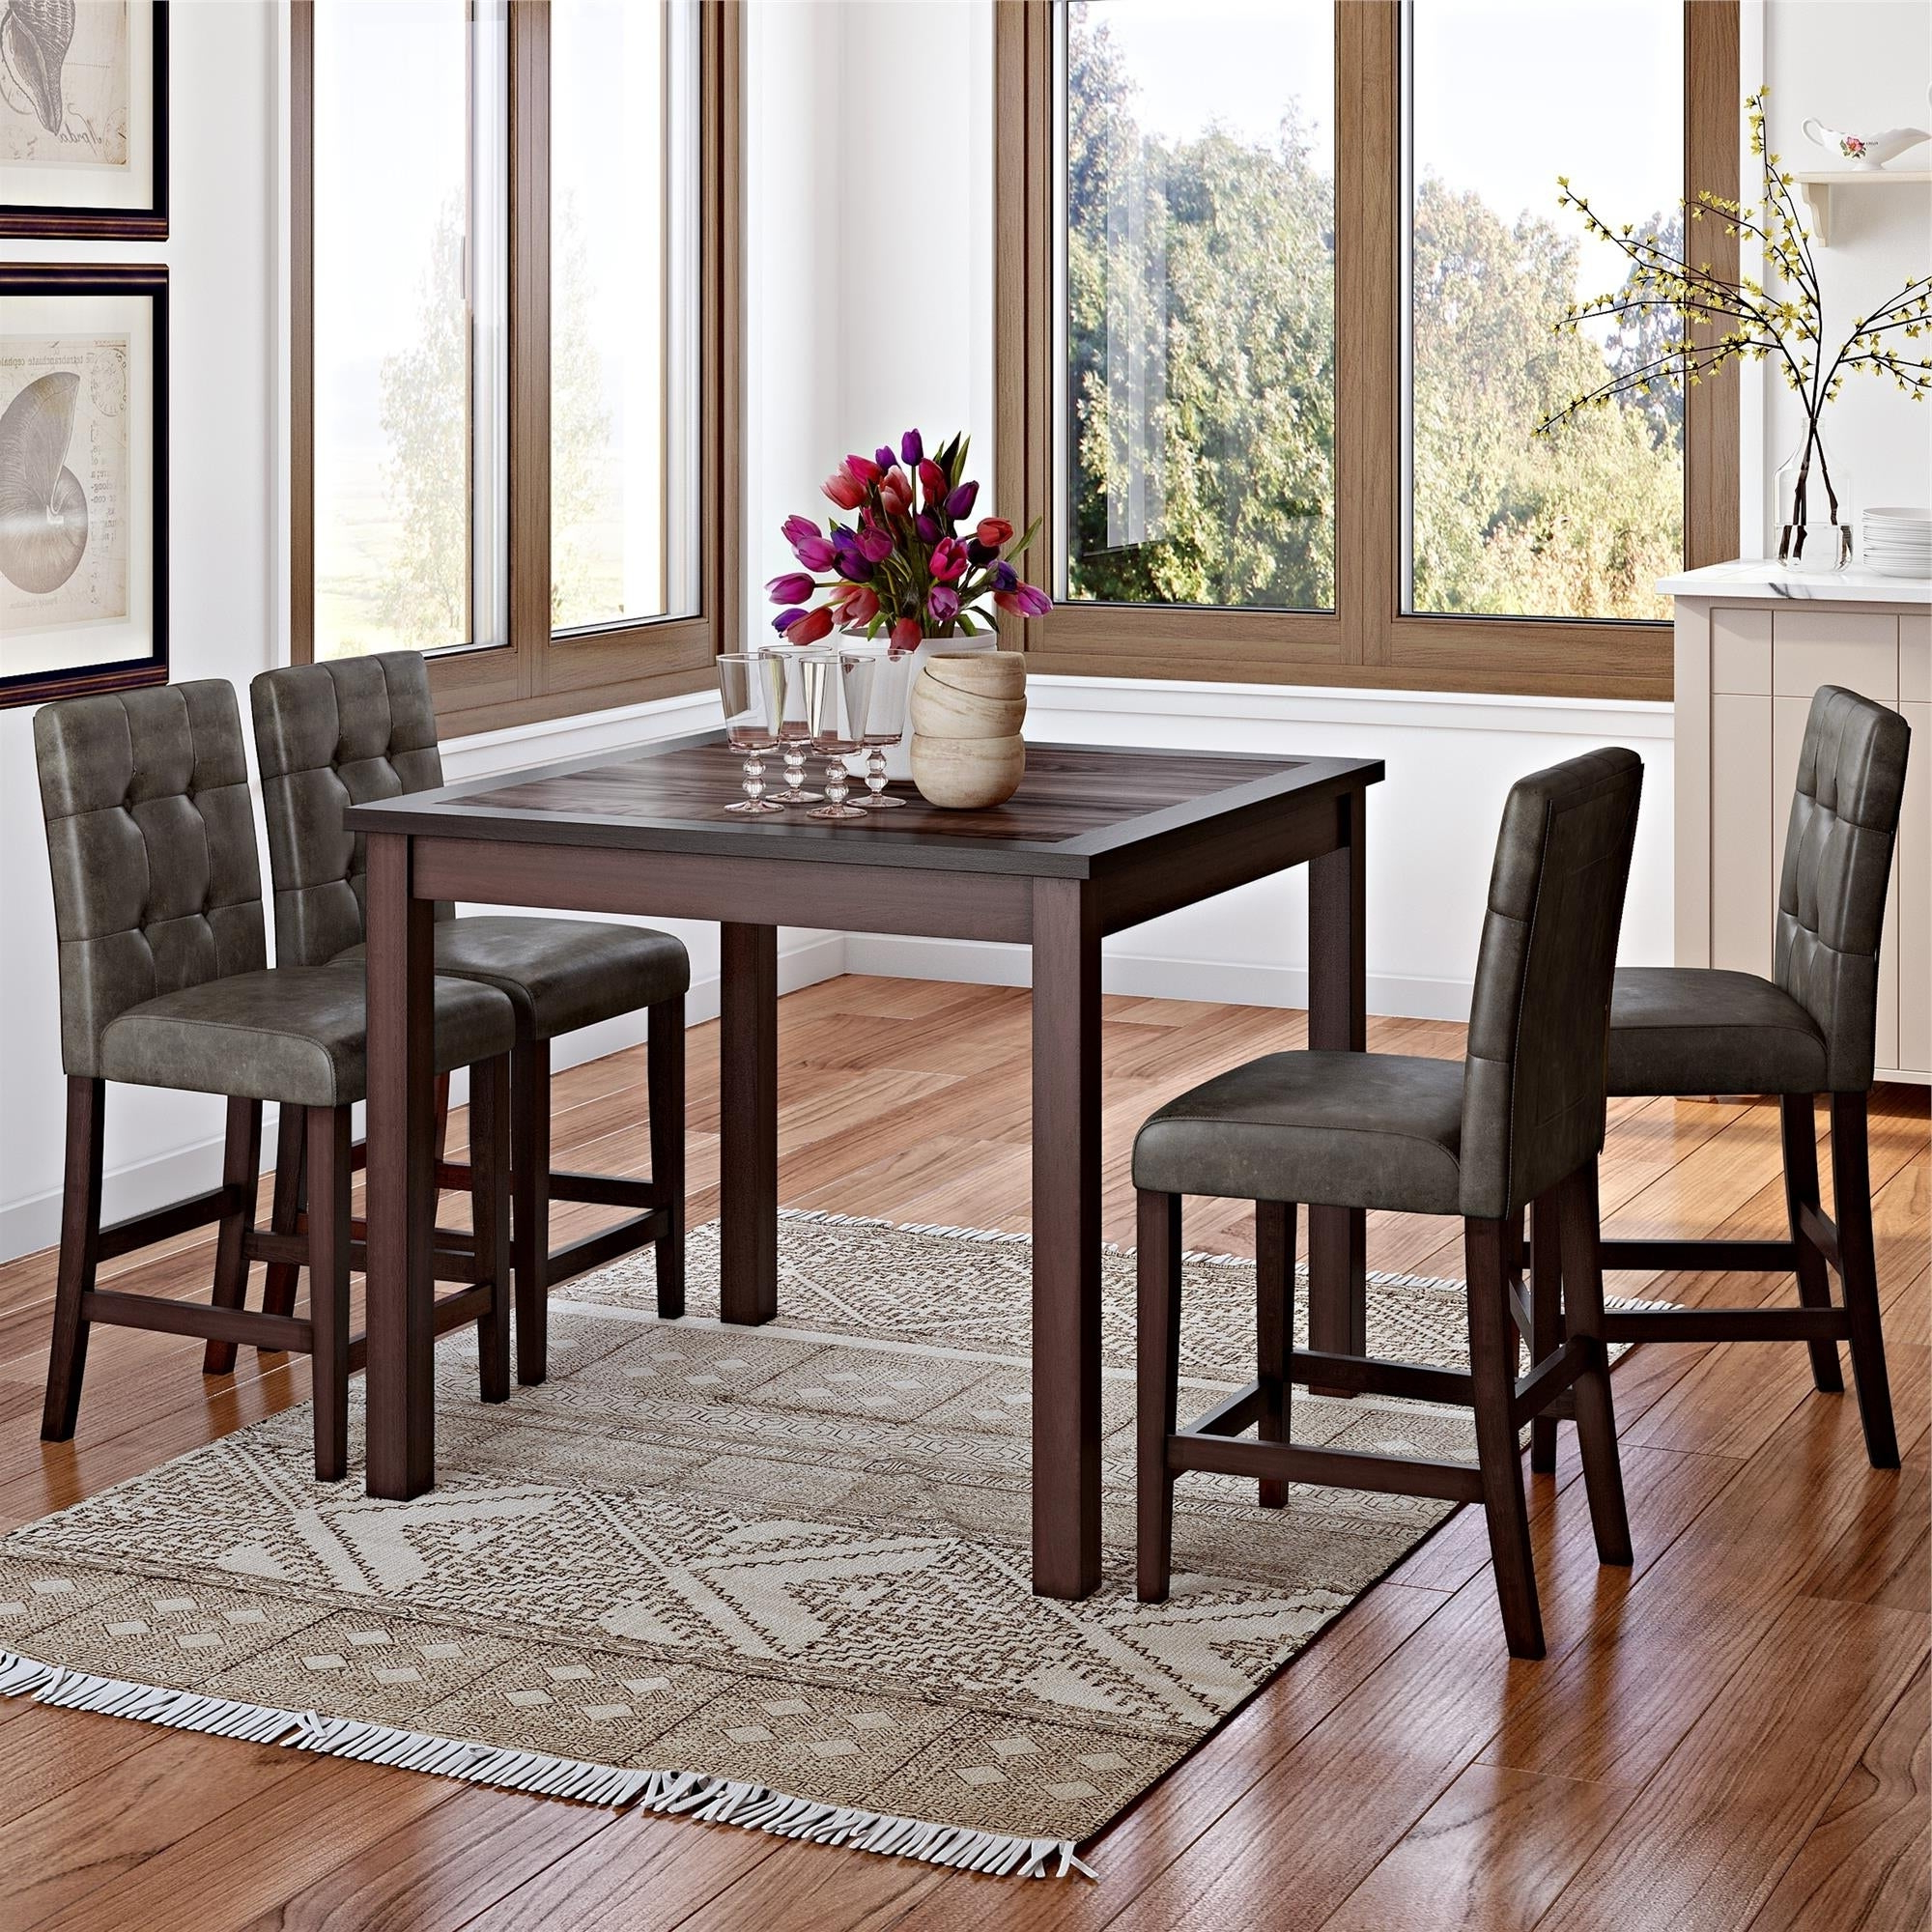 Bettencourt 3 Piece Counter Height Solid Wood Dining Sets Regarding Preferred Gracewood Hollow Betancourt Espresso 5 Piece Counter Height Dining Set (View 6 of 20)